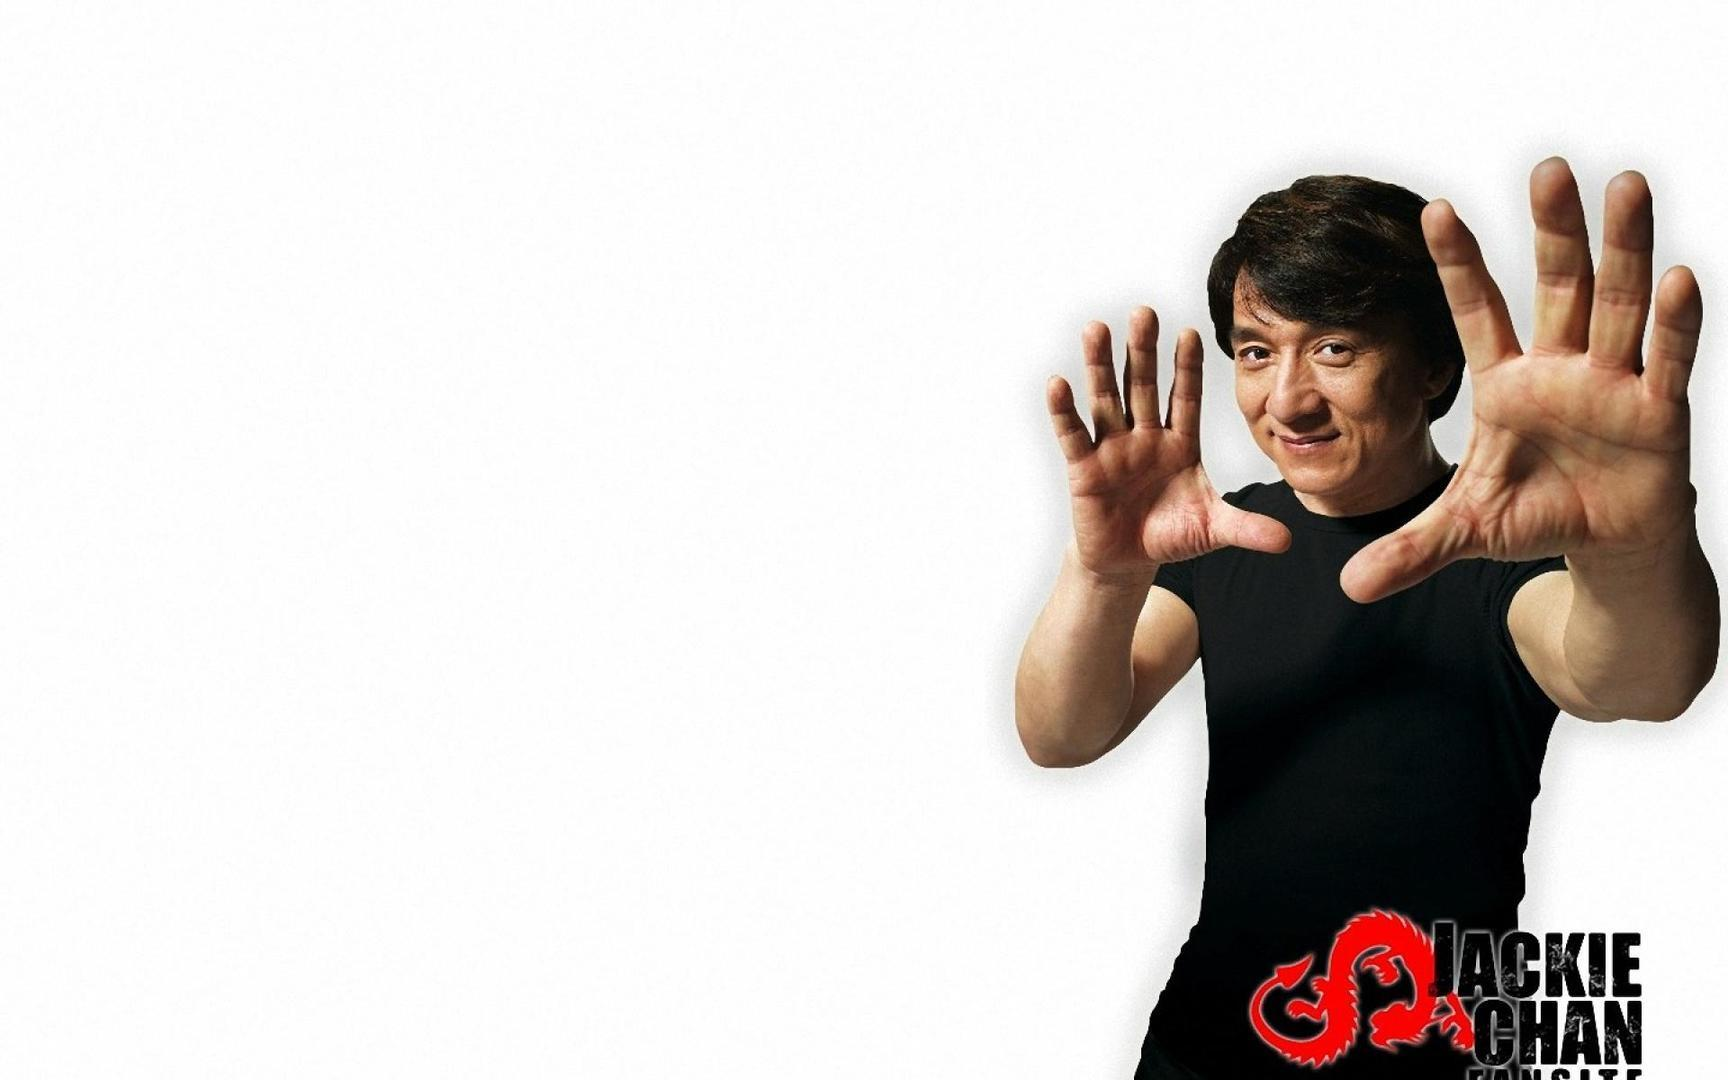 1728x1080 - Jackie Chan Wallpapers 16